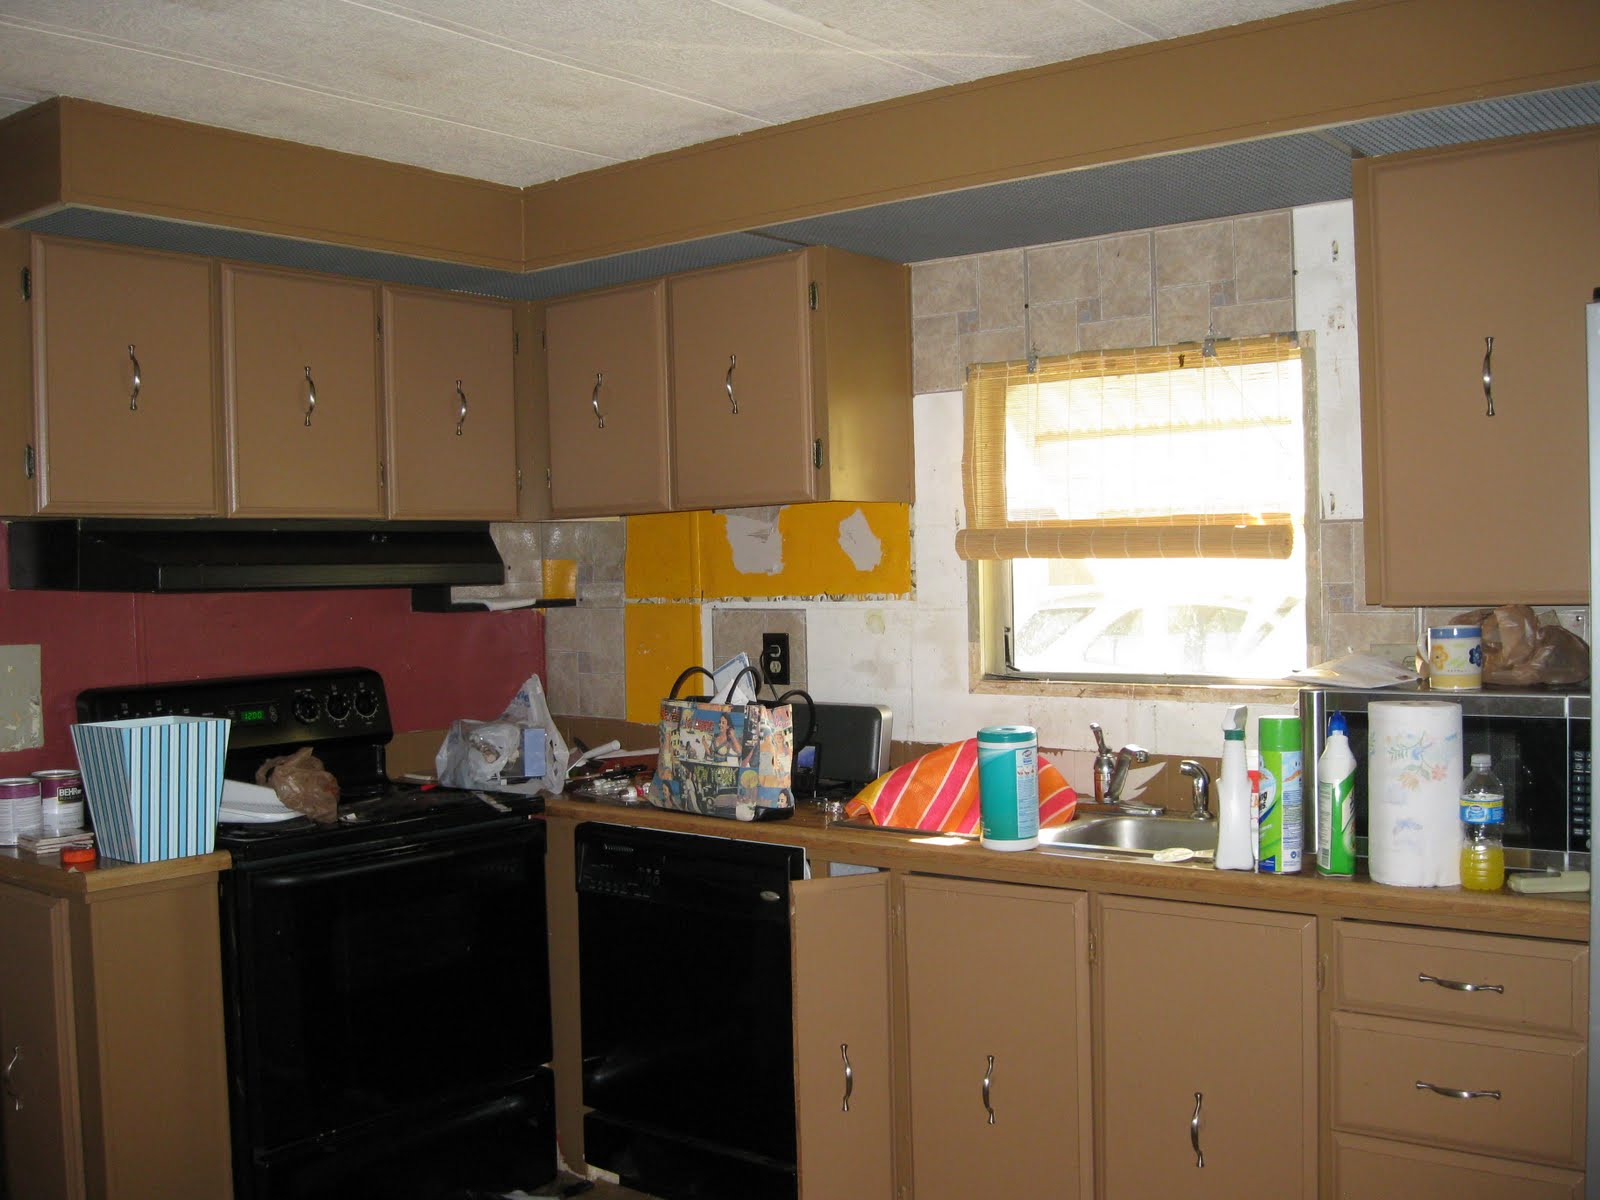 is another view of the kitchen with a dark red wall. Not my style